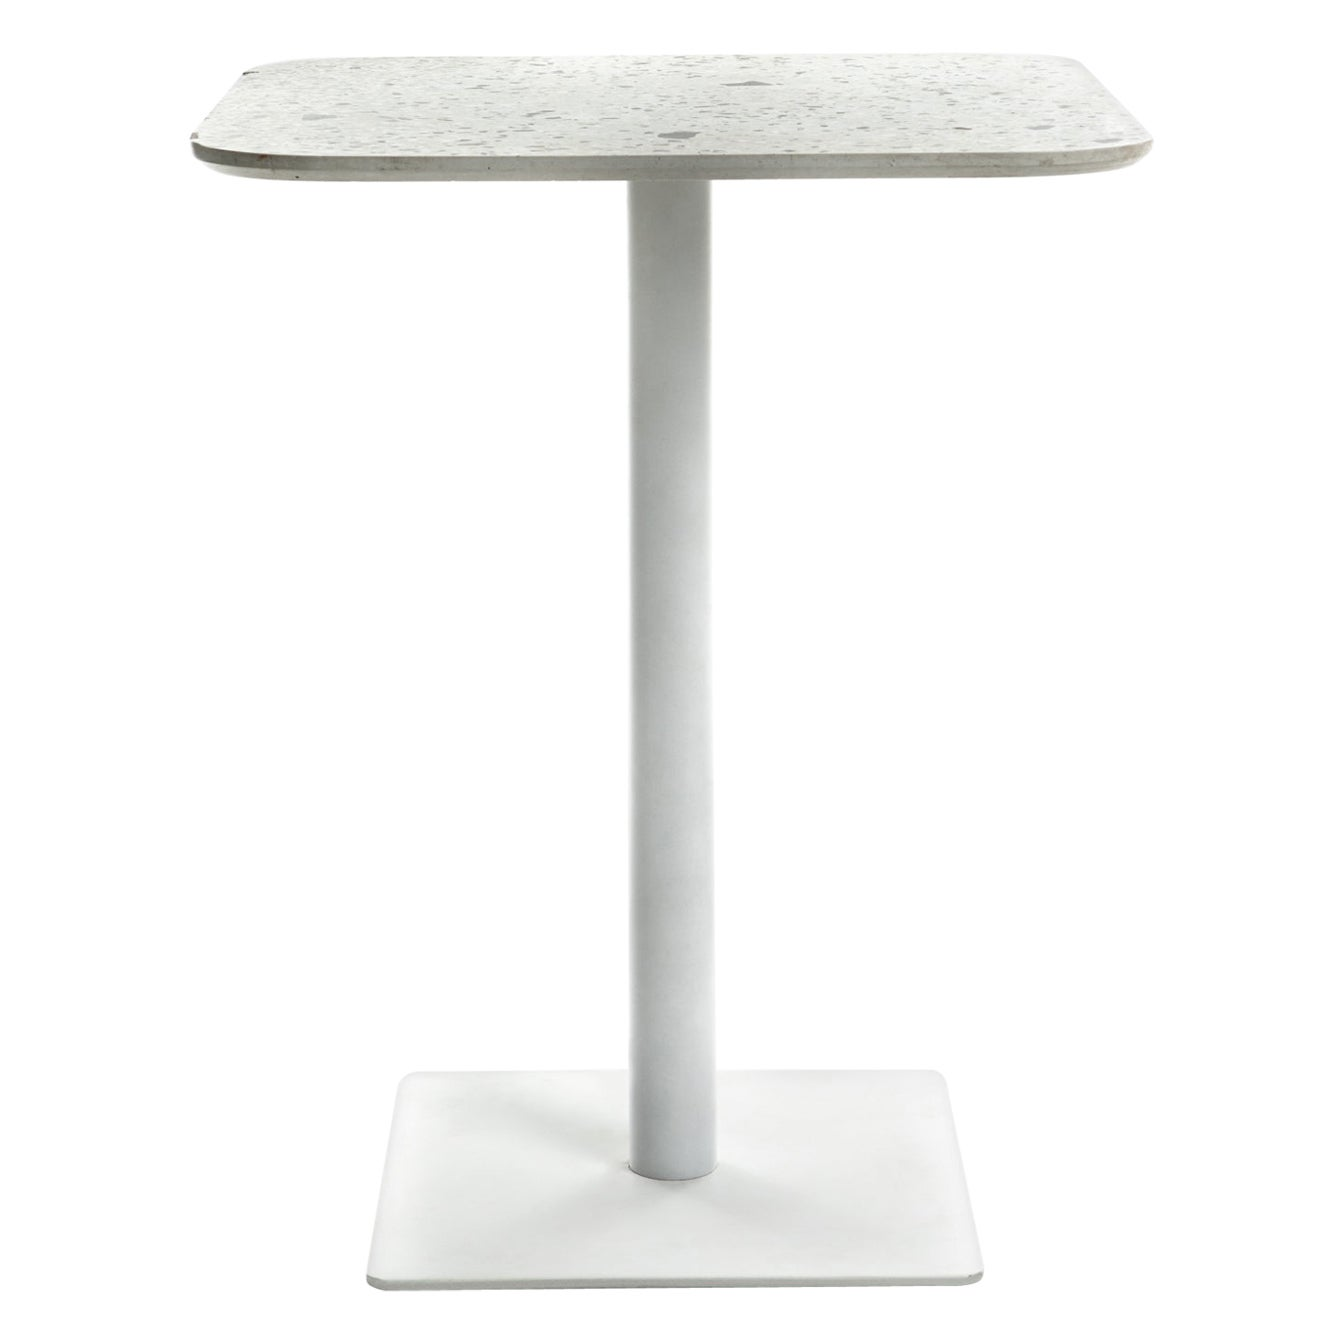 Square Dining Table 'I' in White Terrazzo